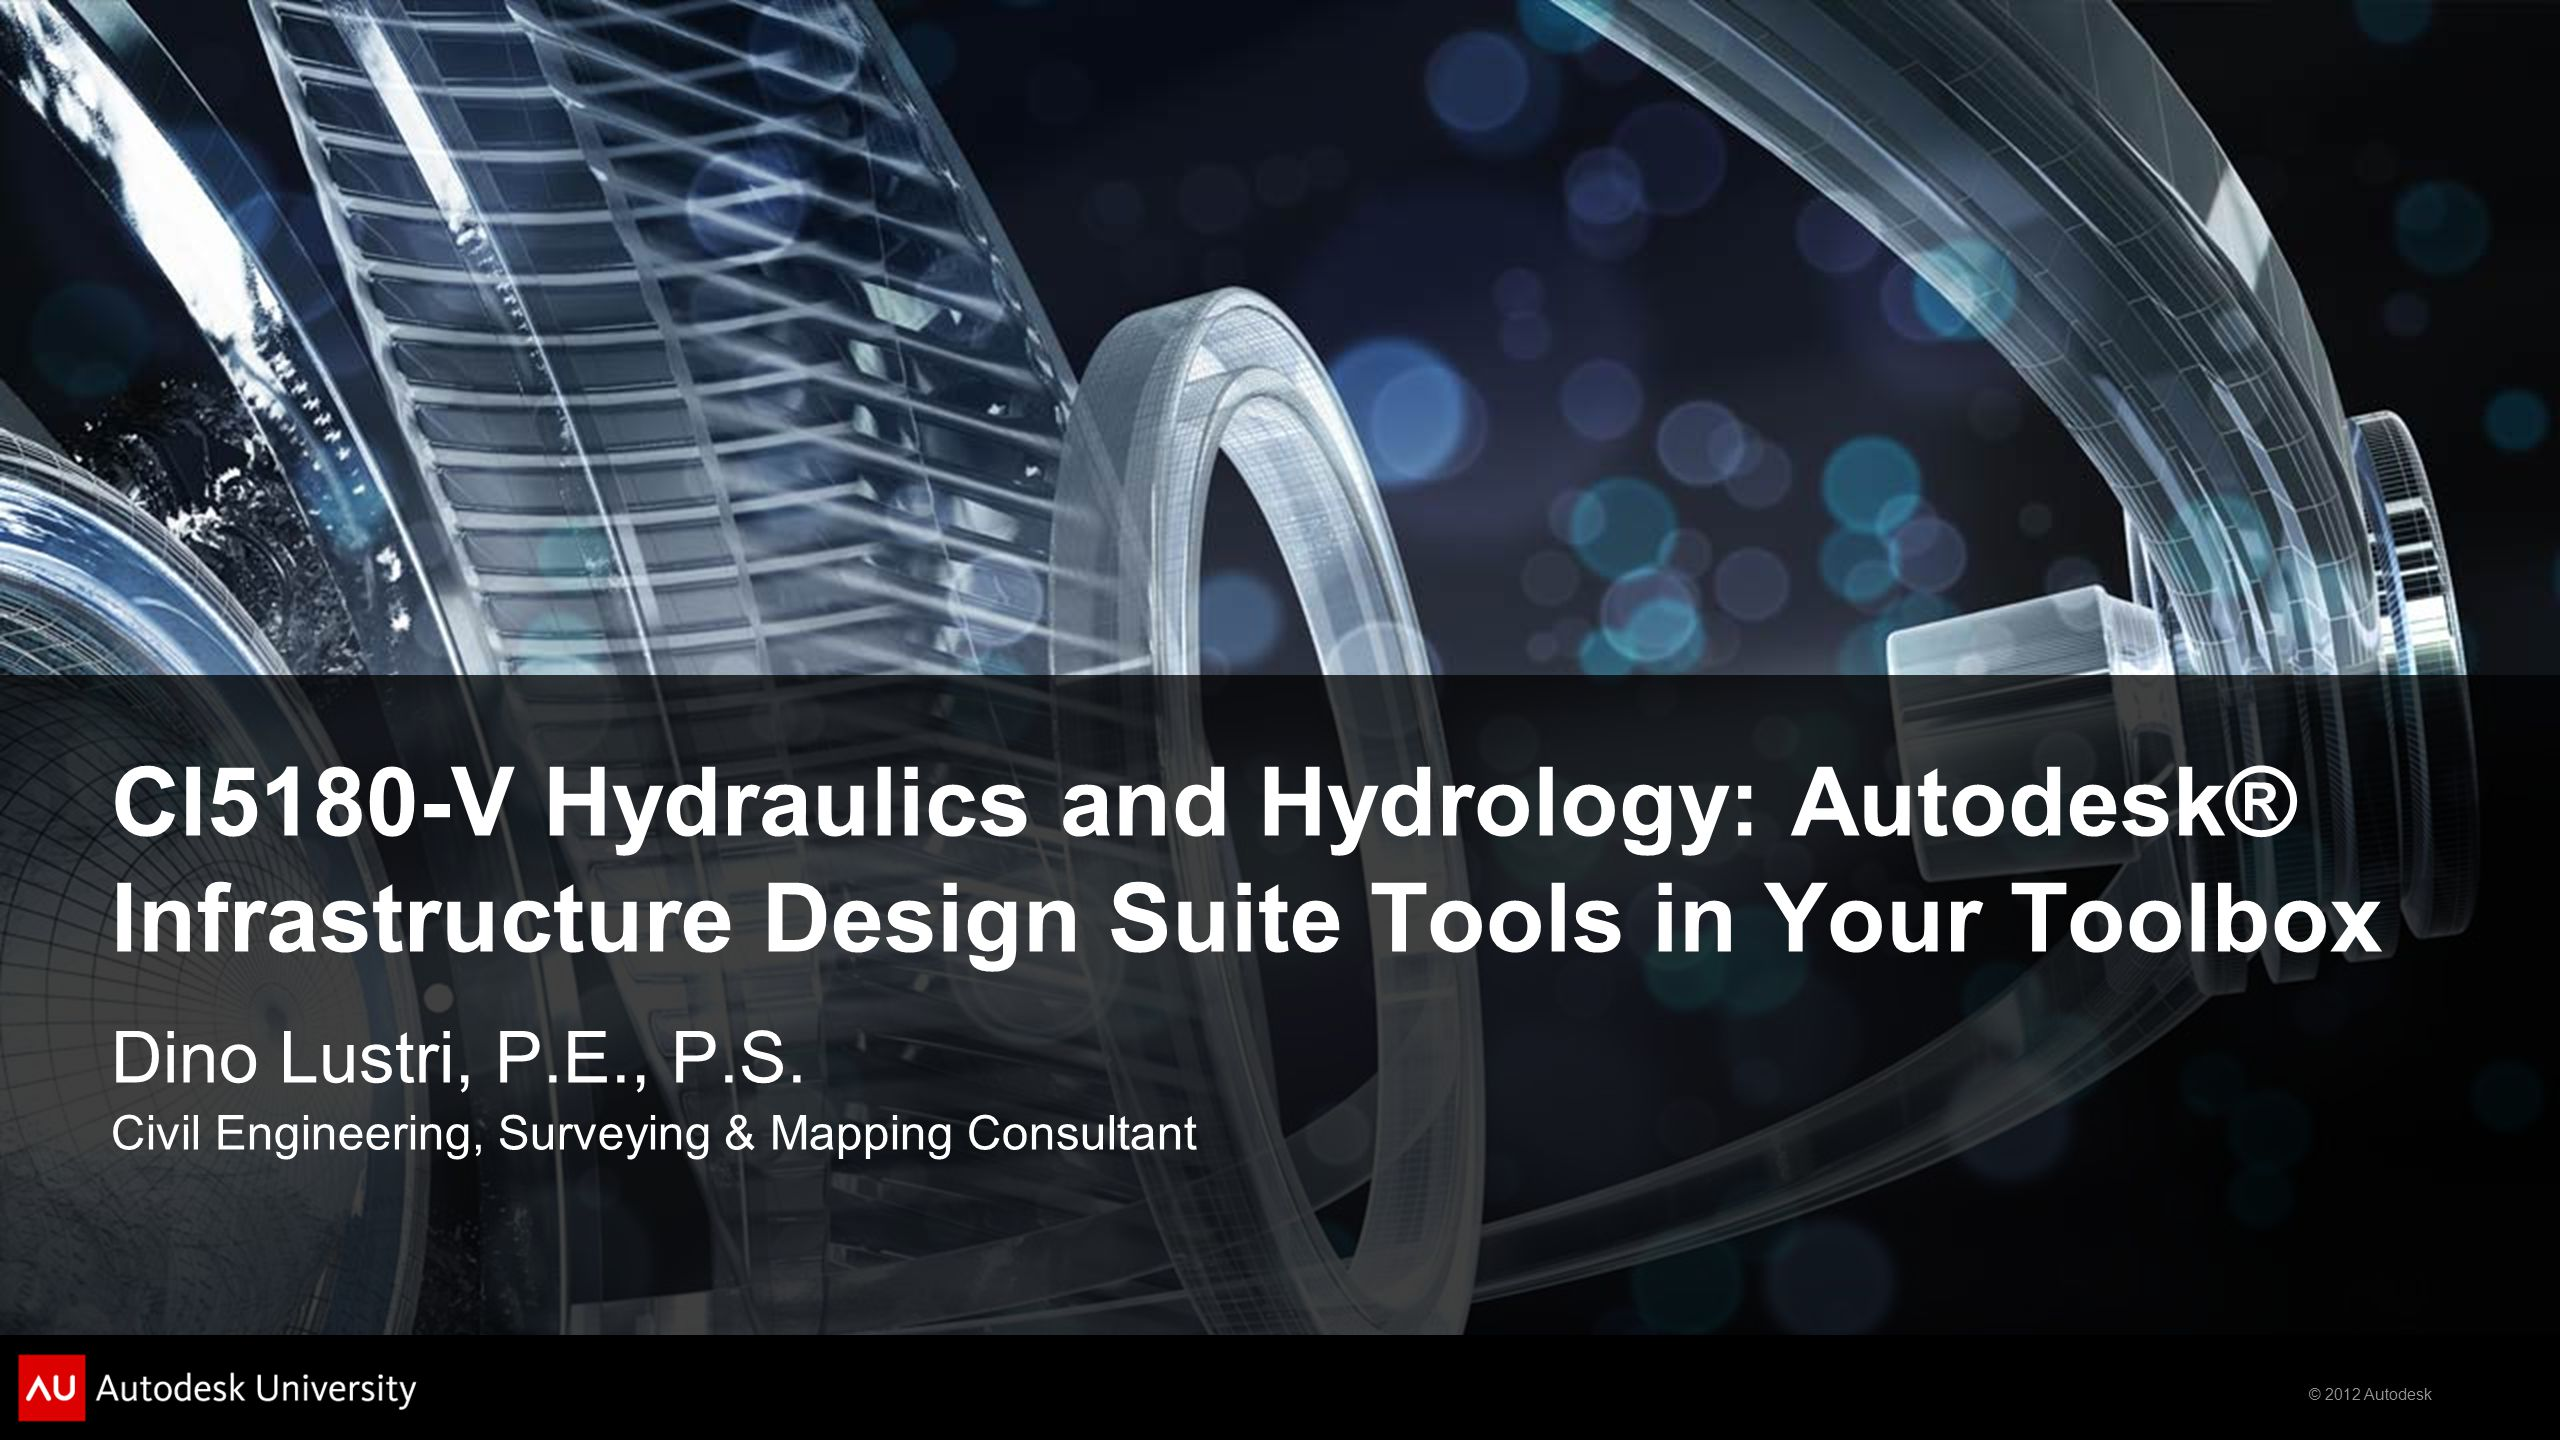 © 2012 Autodesk CI5180-V Hydraulics and Hydrology: Autodesk® Infrastructure Design Suite Tools in Your Toolbox Dino Lustri, P.E., P.S.